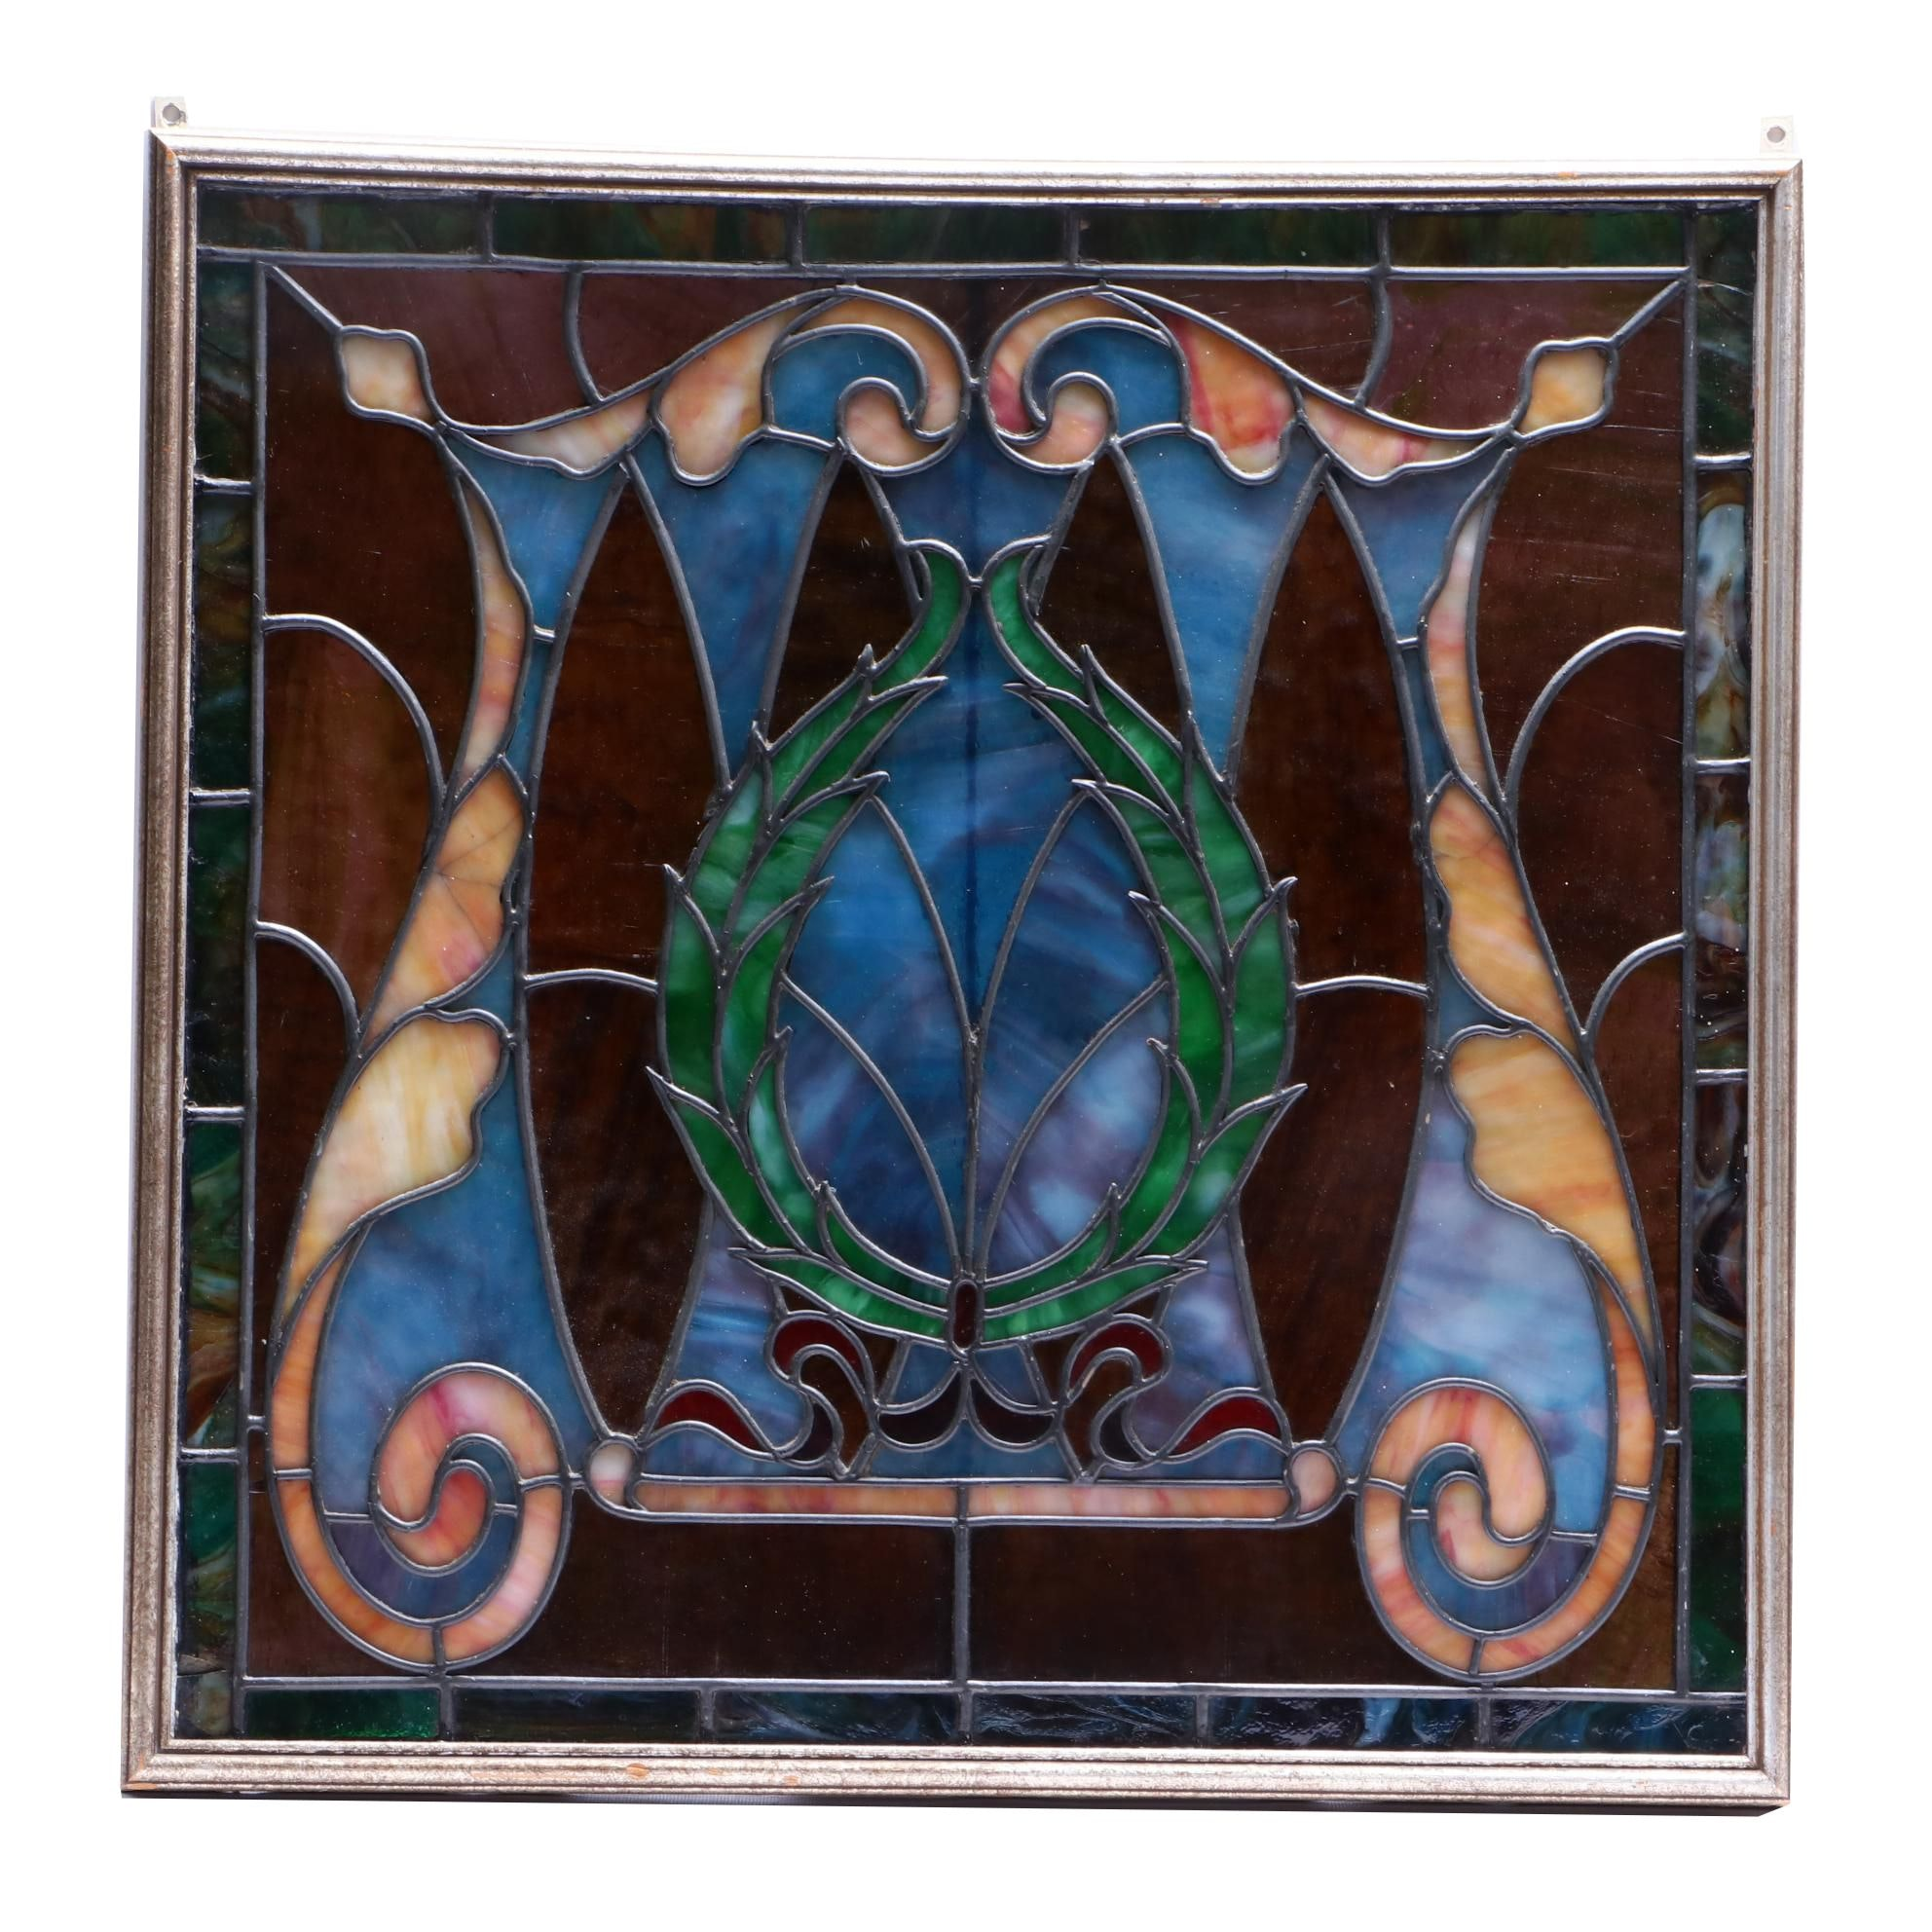 Handmade Leaded Stained Glass Panel in Wood Frame